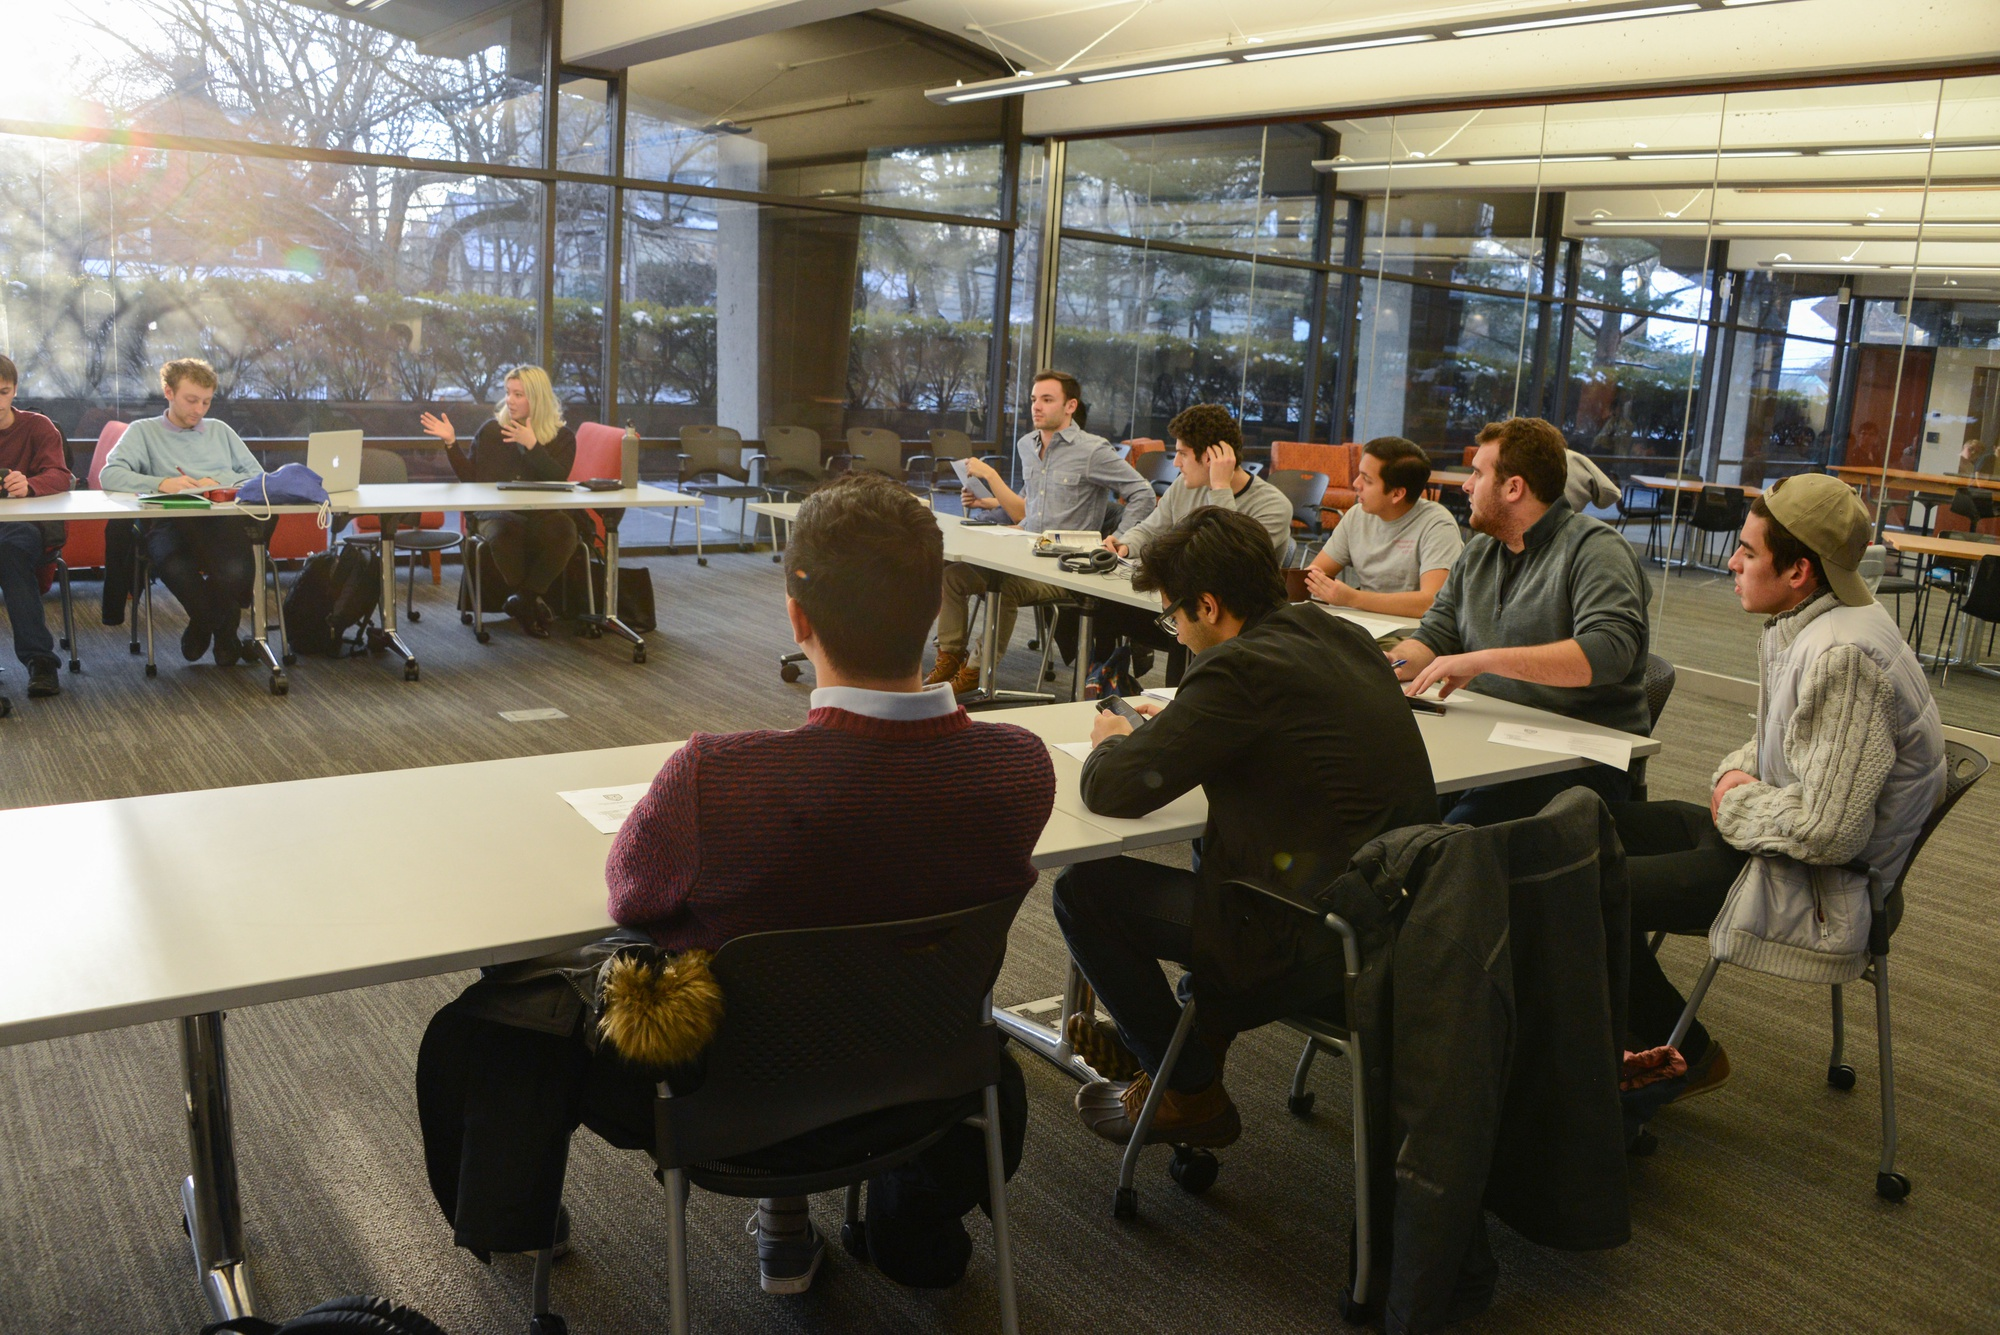 Members of the Harvard Undergraduate Council meet in the SOCH on Sunday afternoon to discuss issues and concerns raised by the student body.